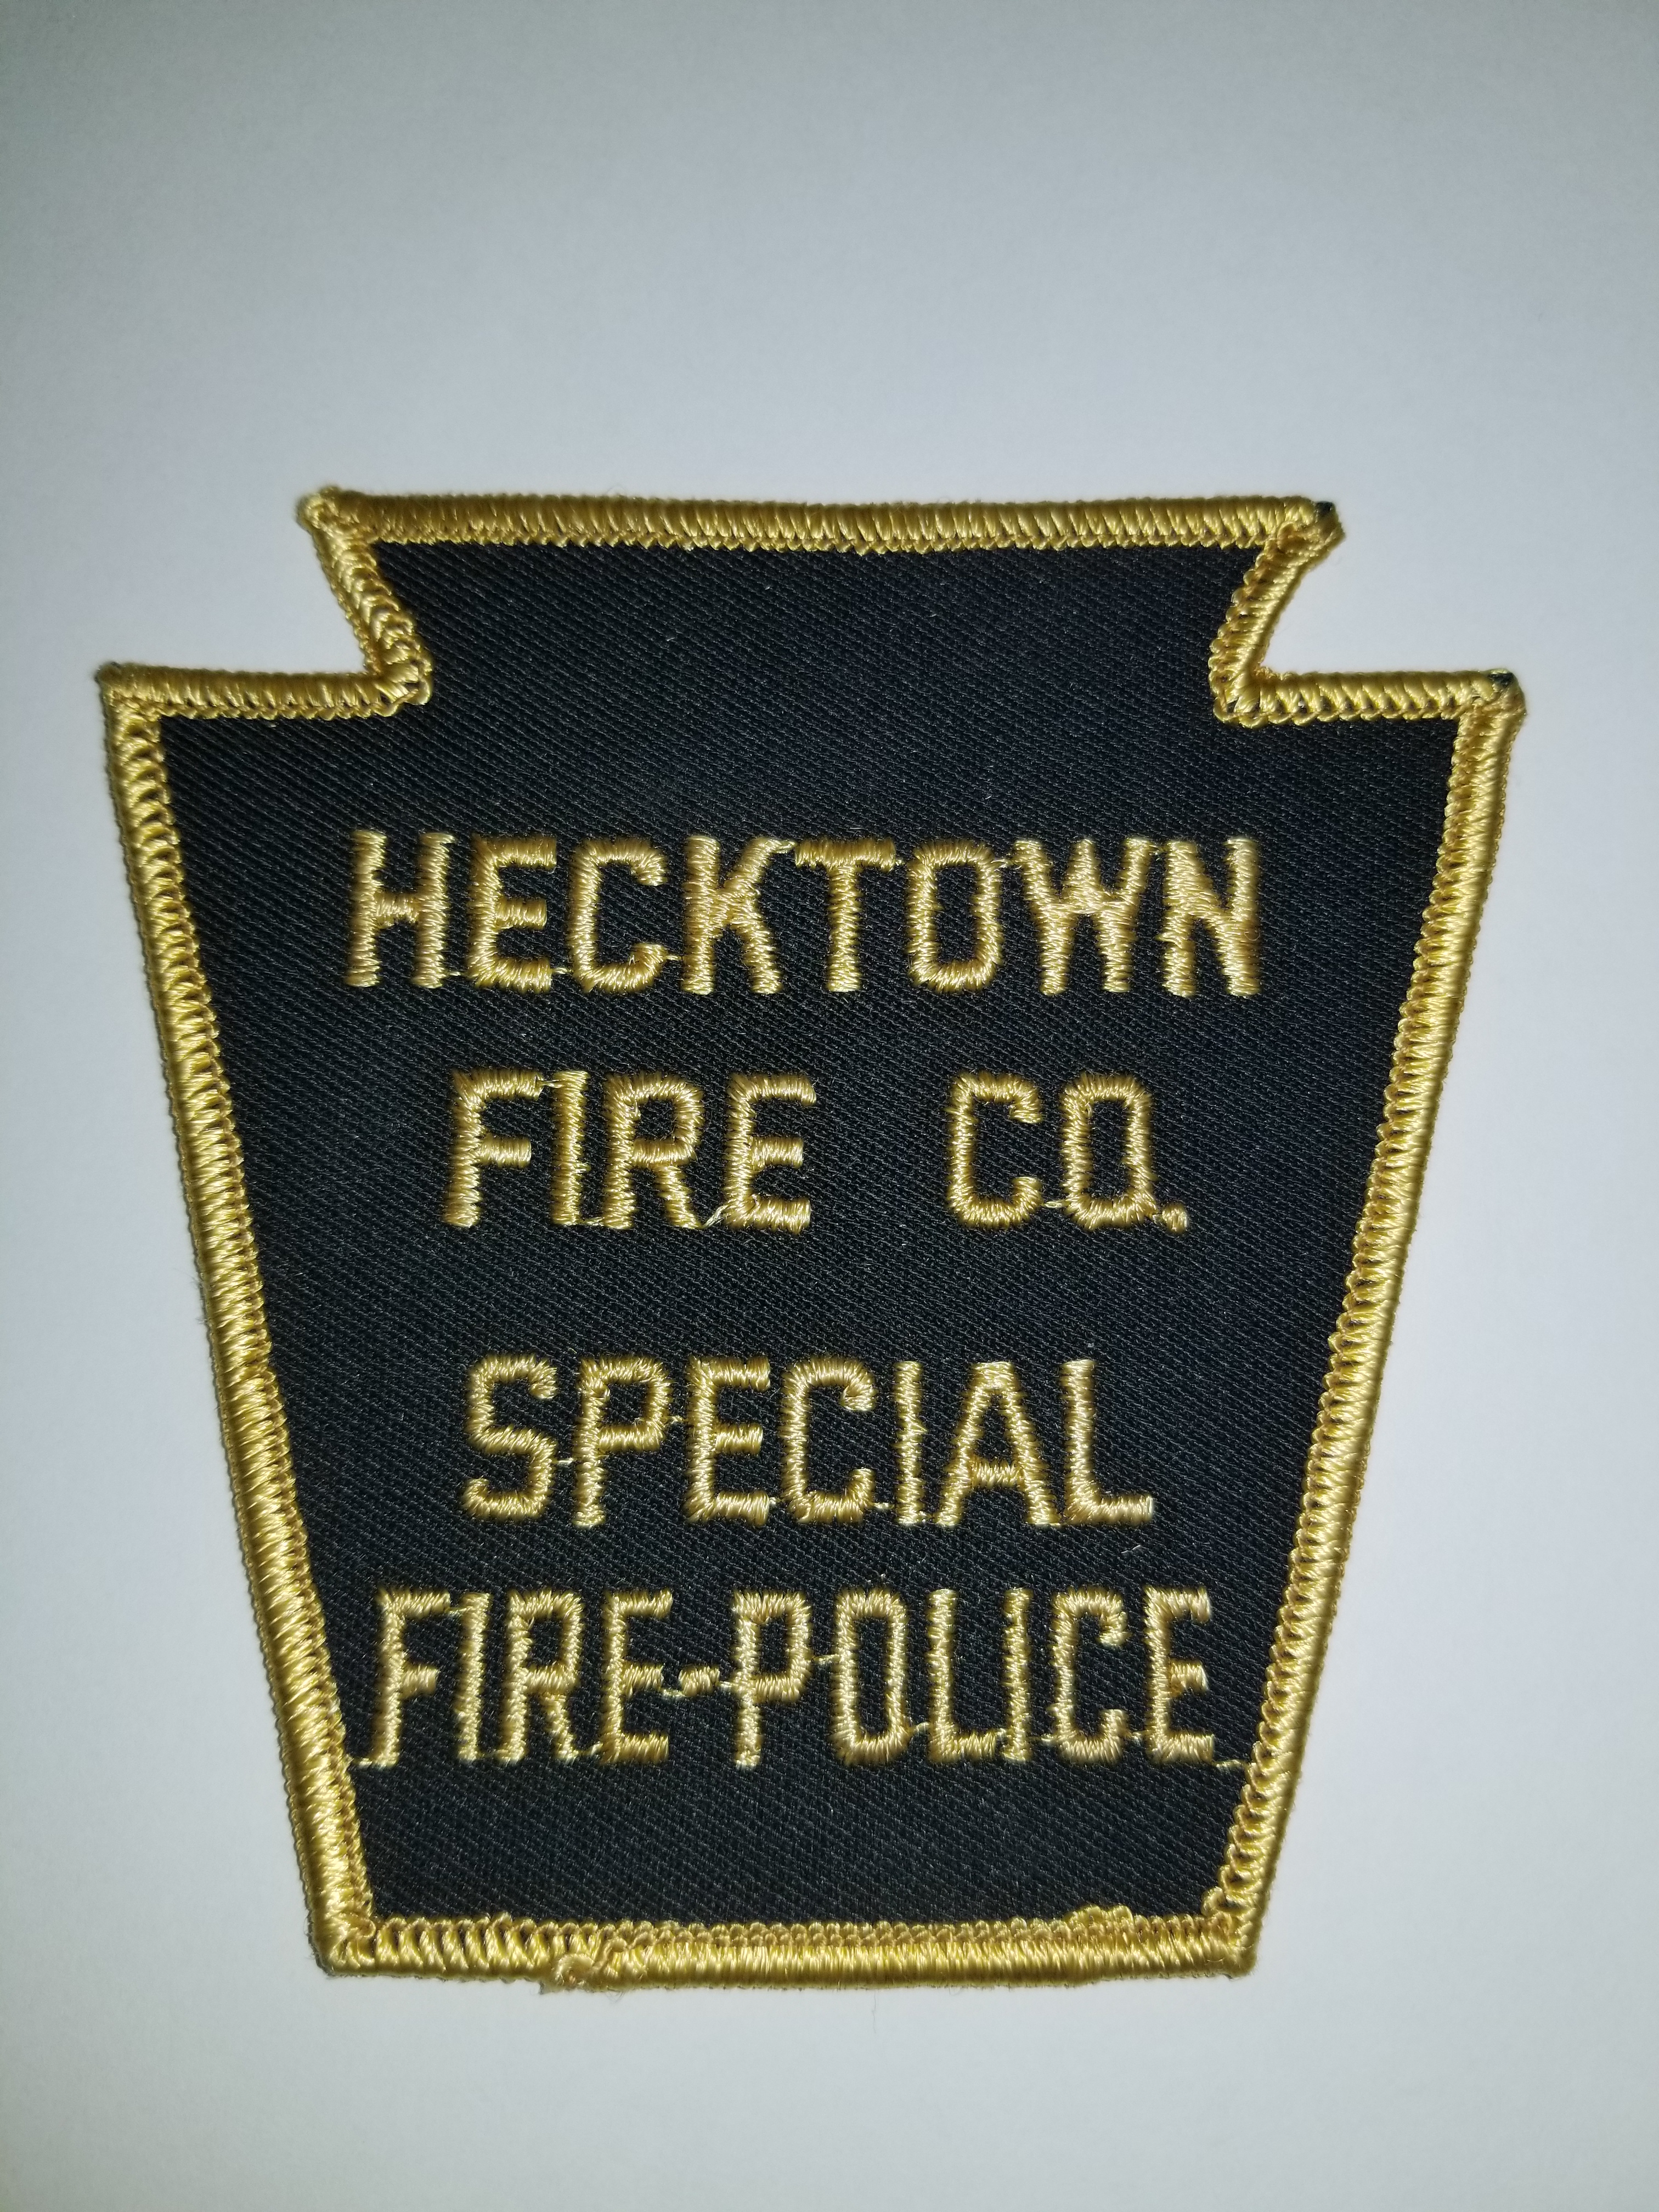 Hecktown Fire Co. PA Special Fire Police